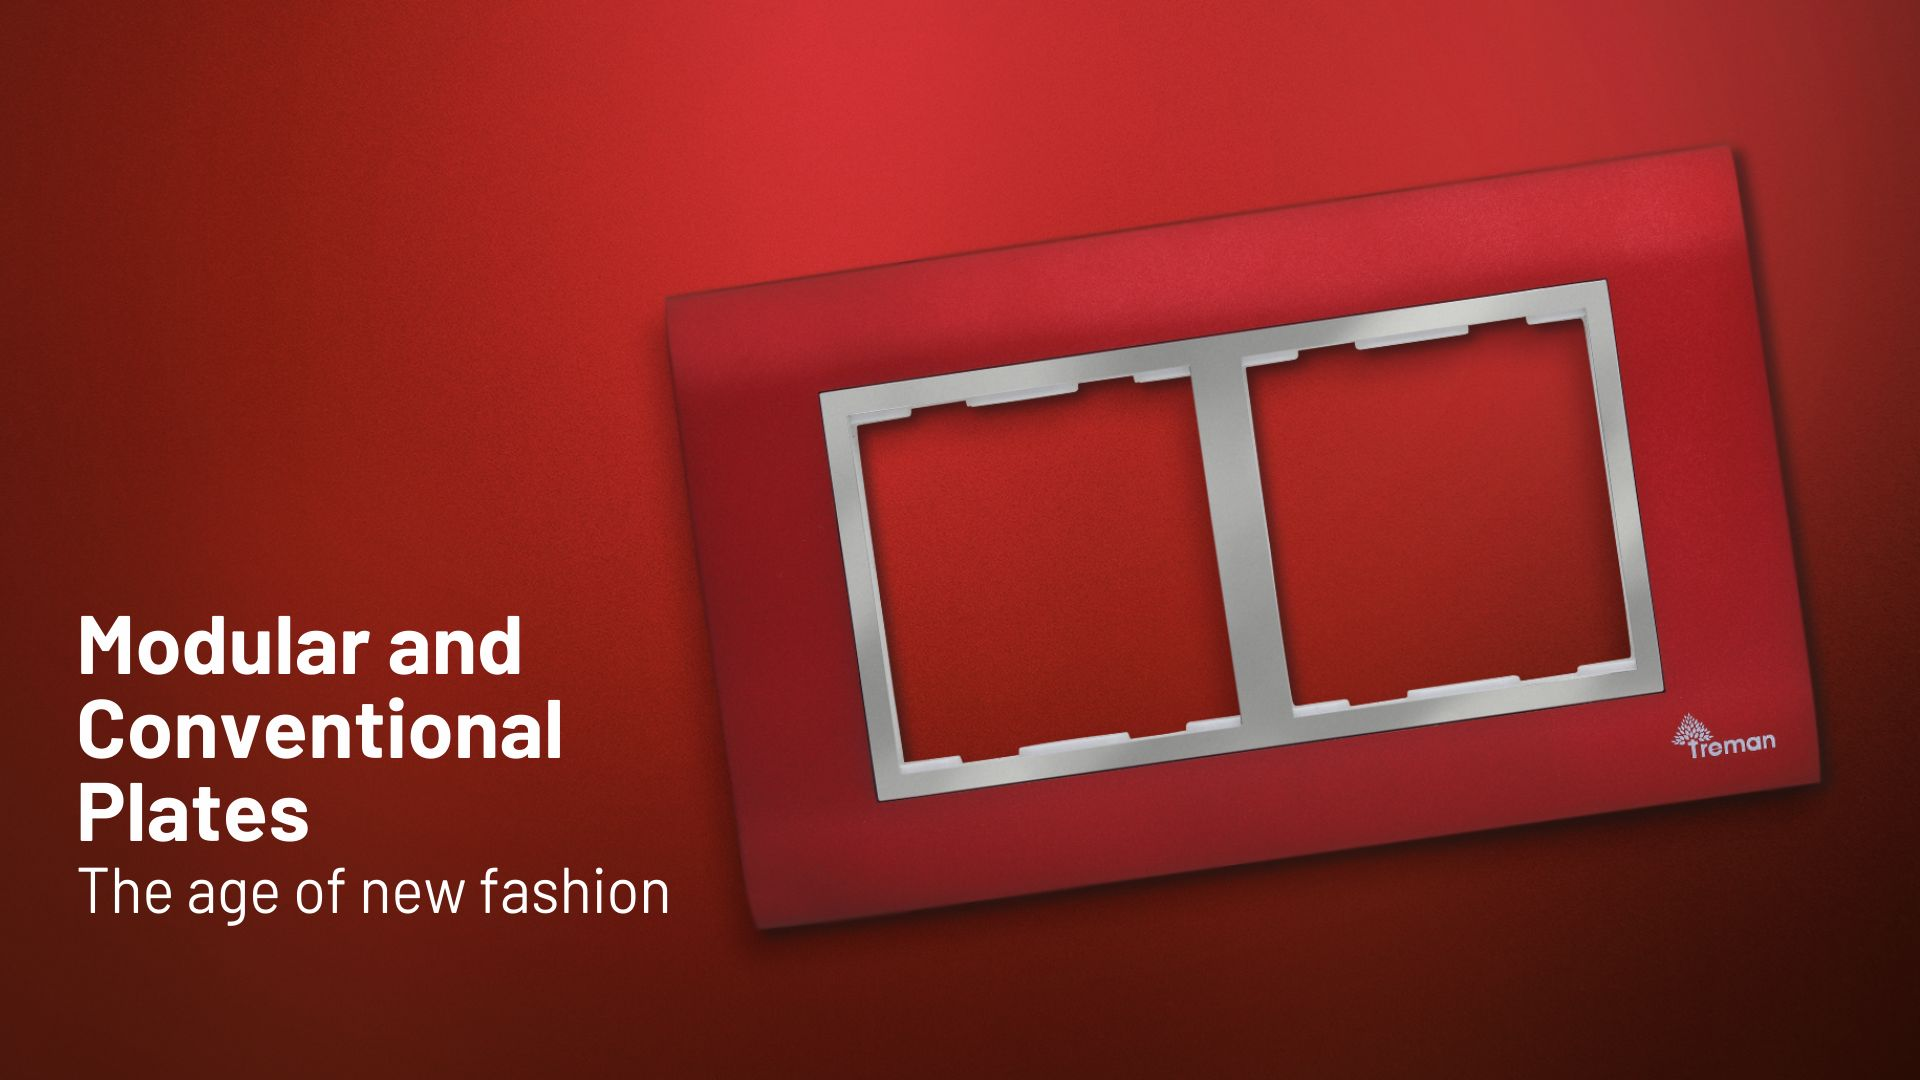 Modular and Conventional Plates Banner 1920 x 1080 Pixels